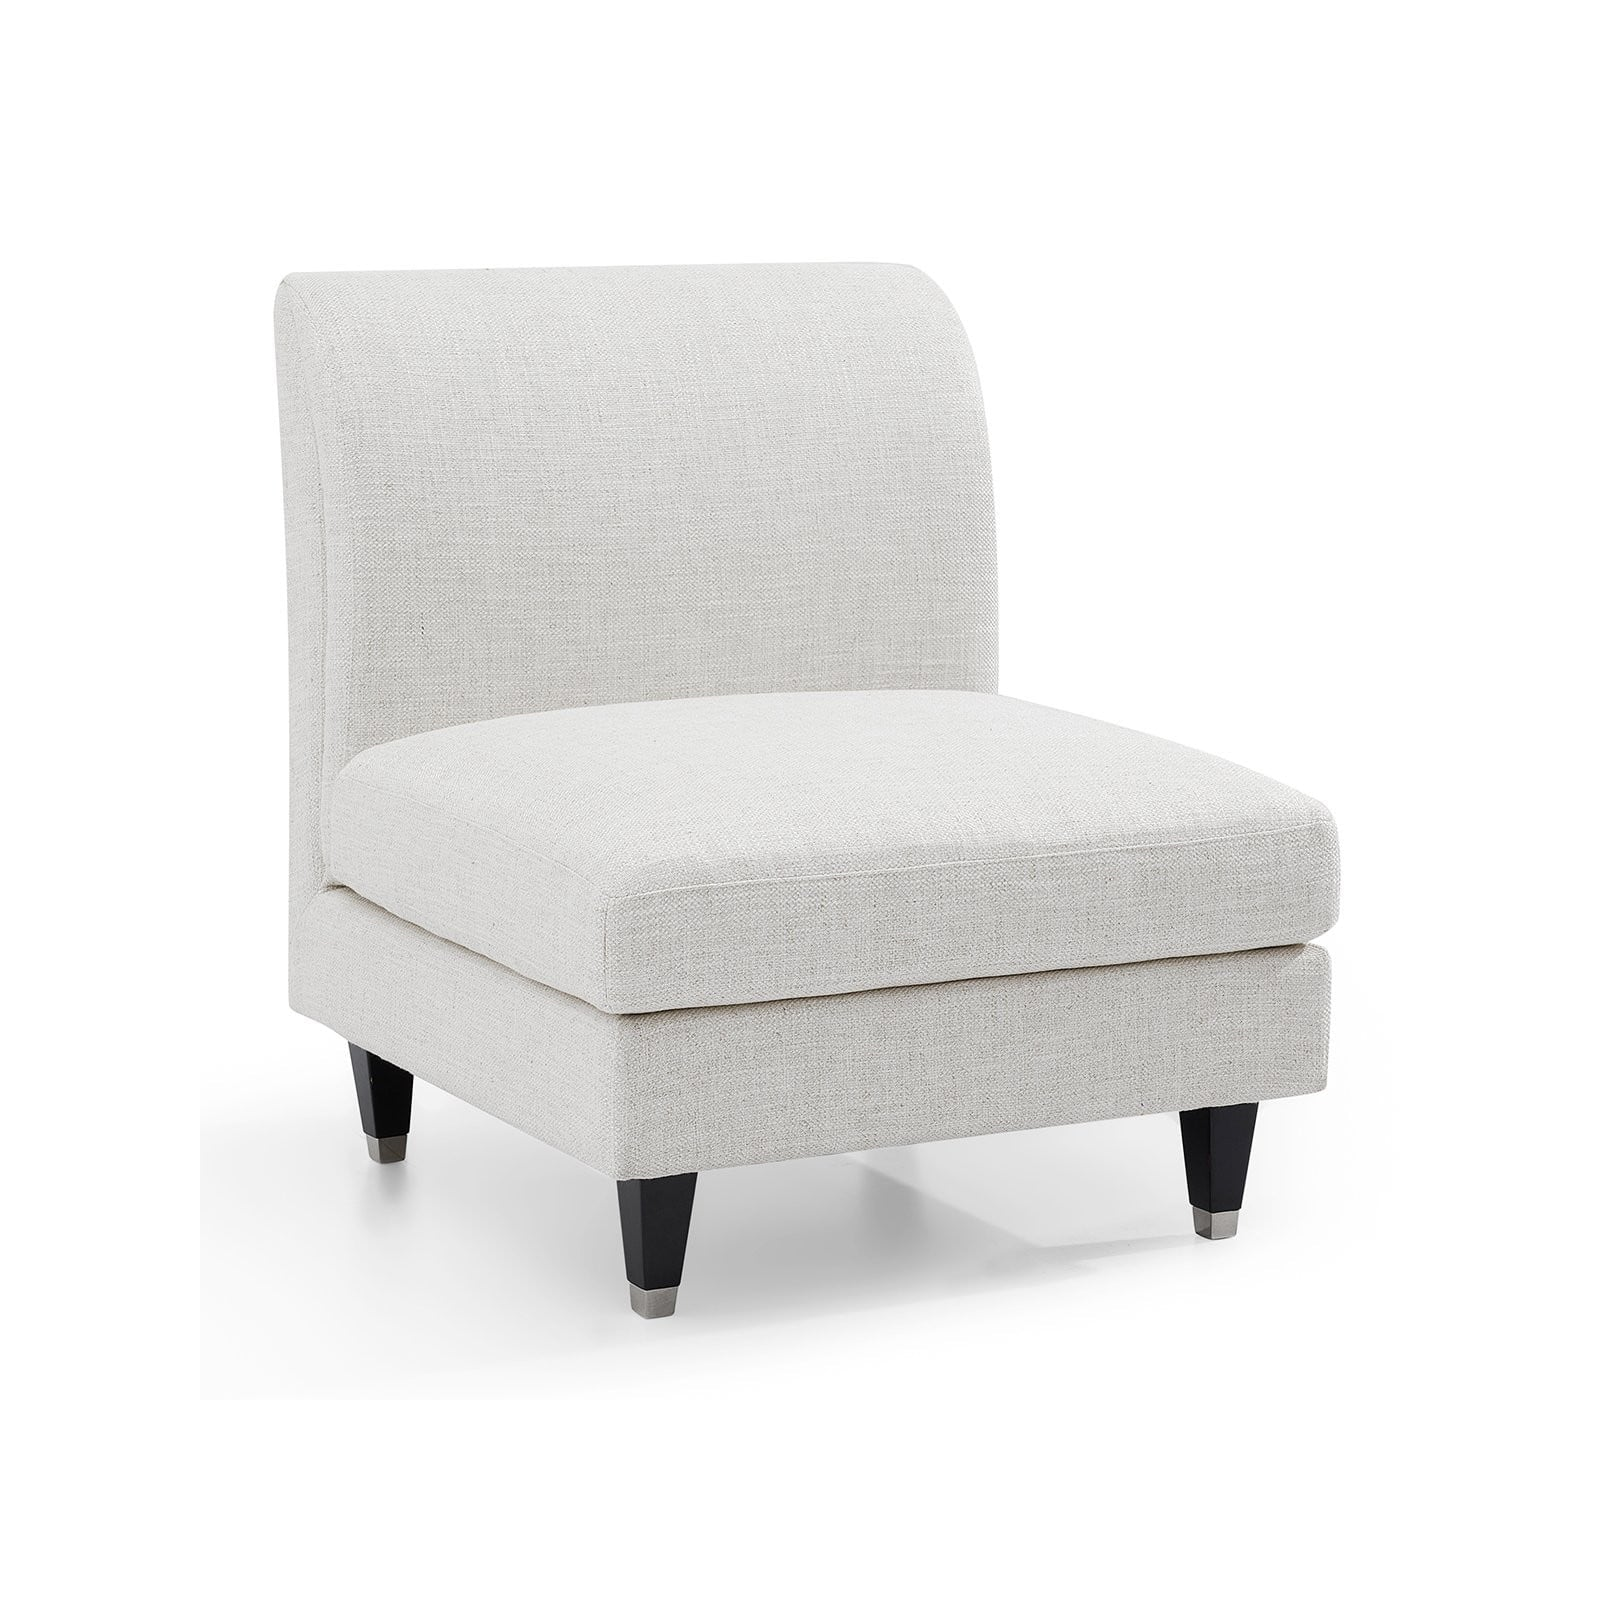 Tailor Ivory Linen Chair | Attica House